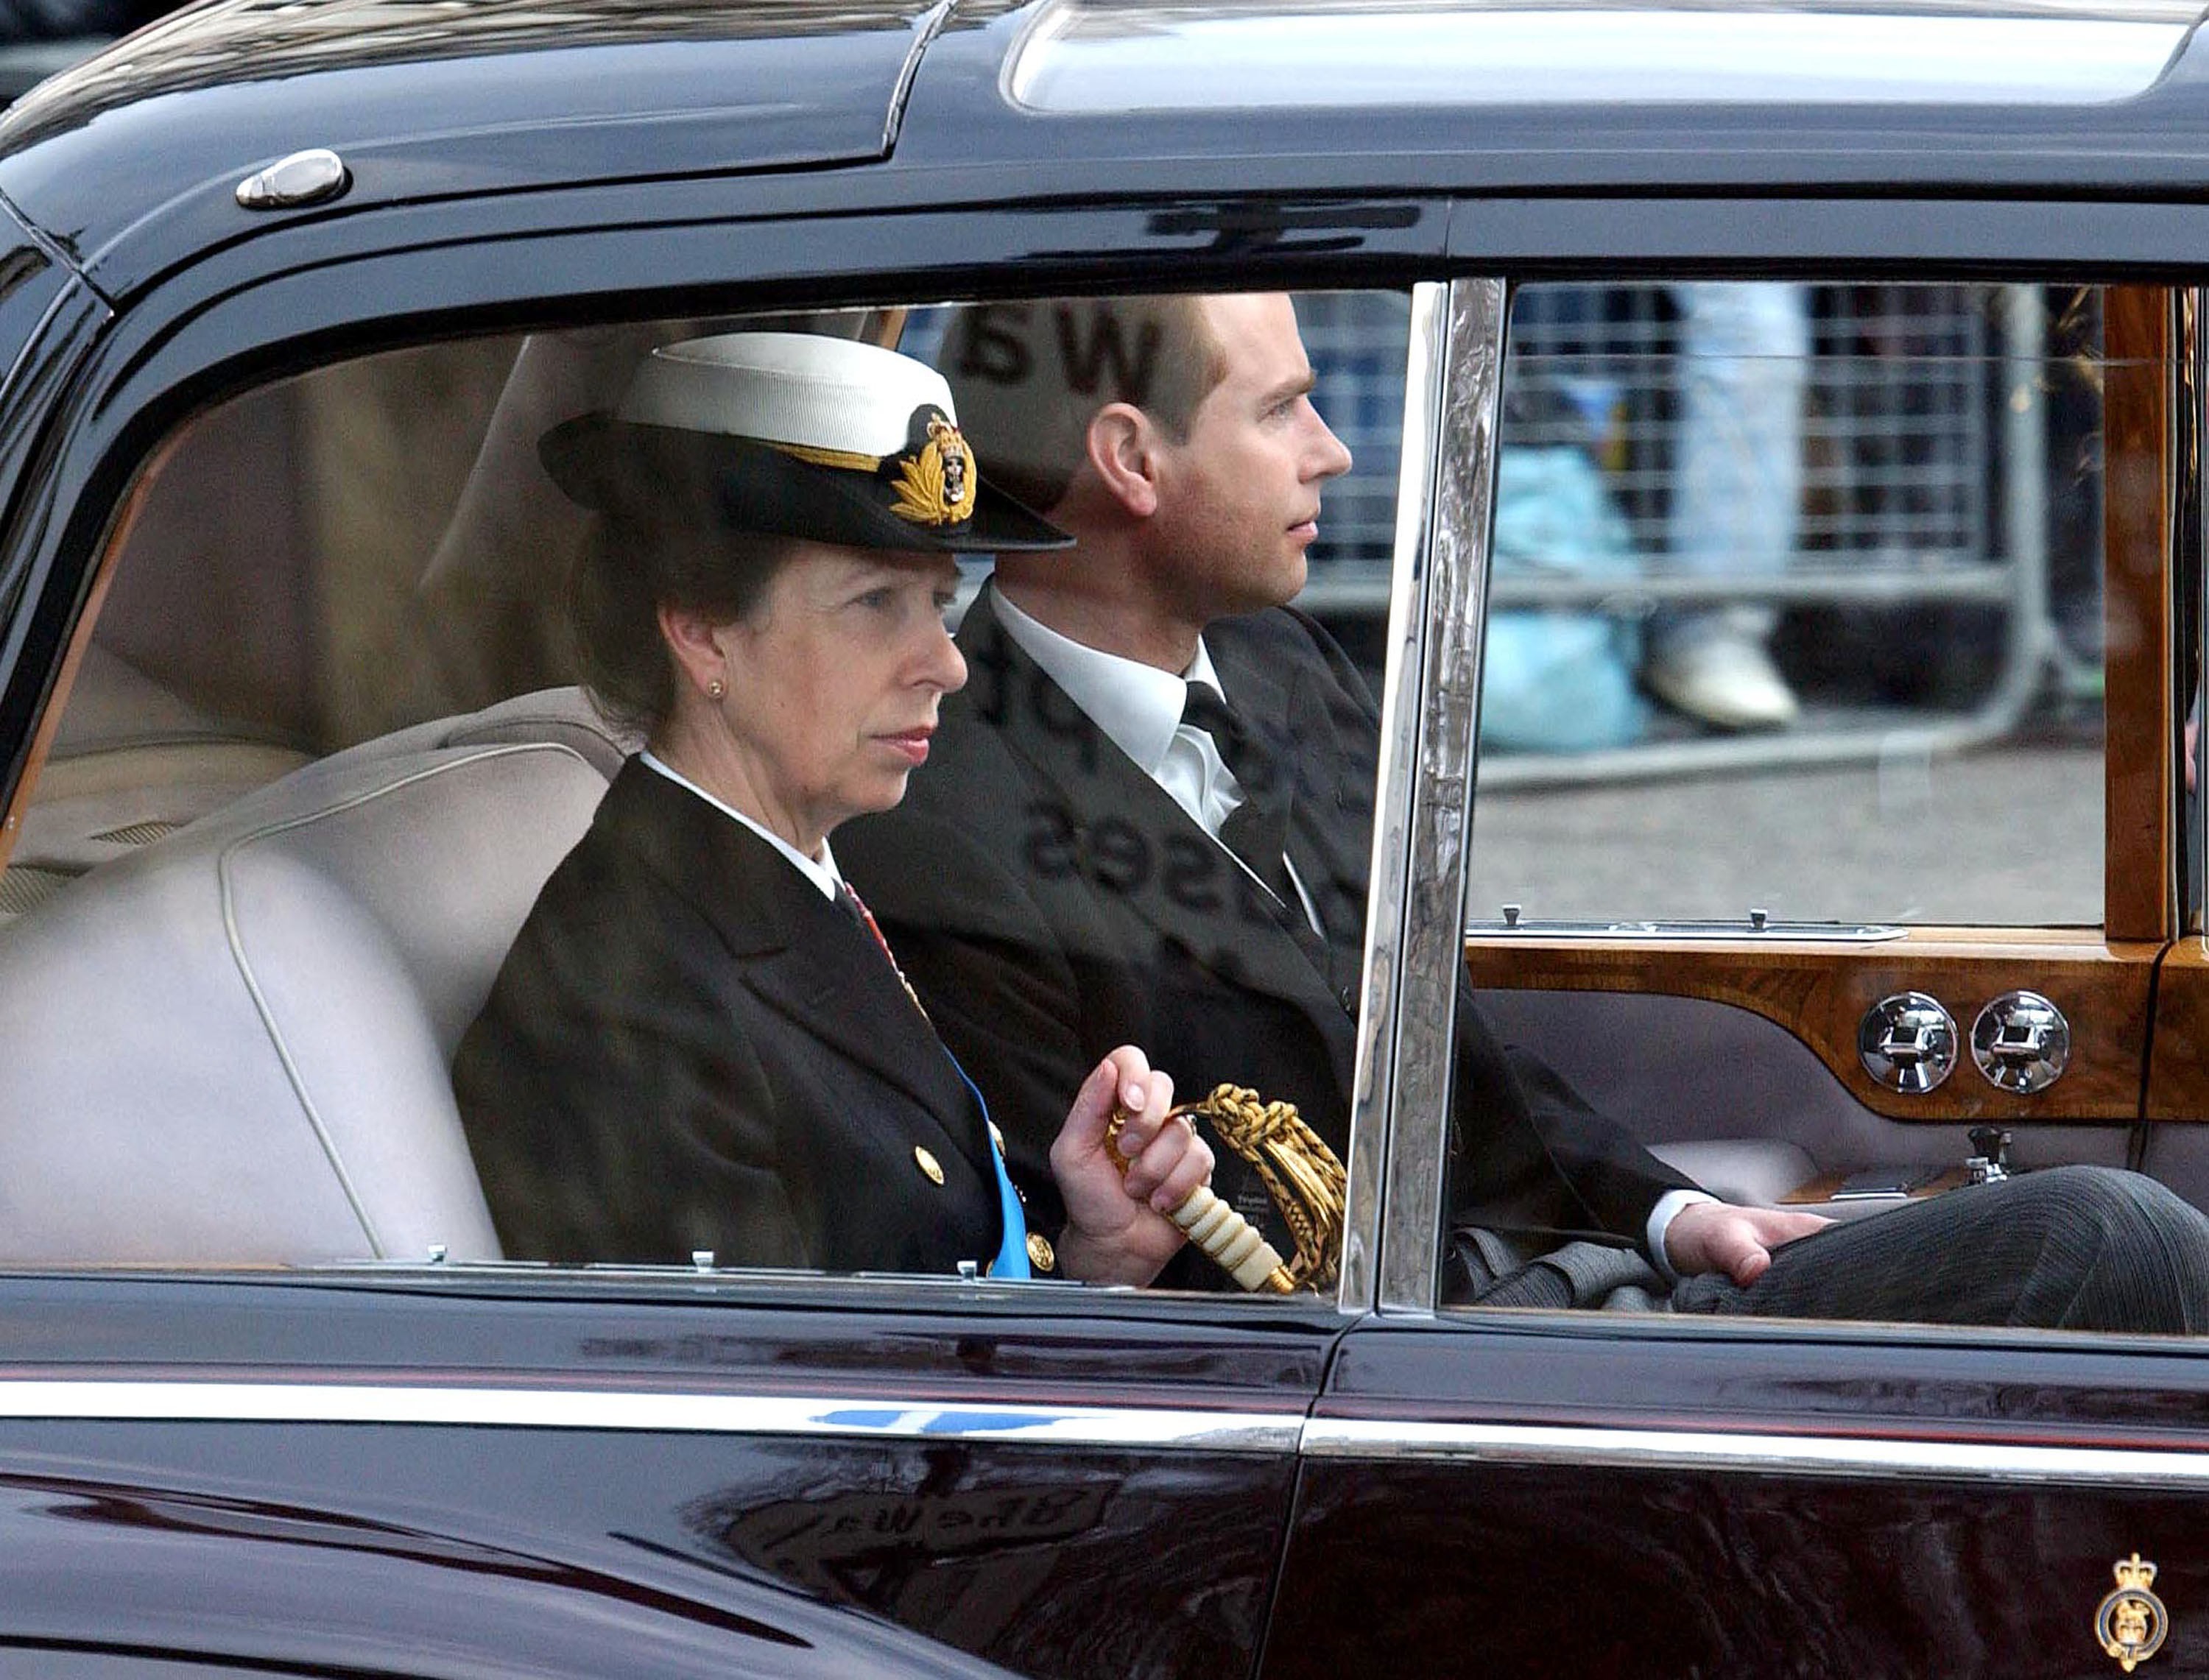 Princess Anne spotted inside the Royal car on the streets of UK. | Photo: Getty Images